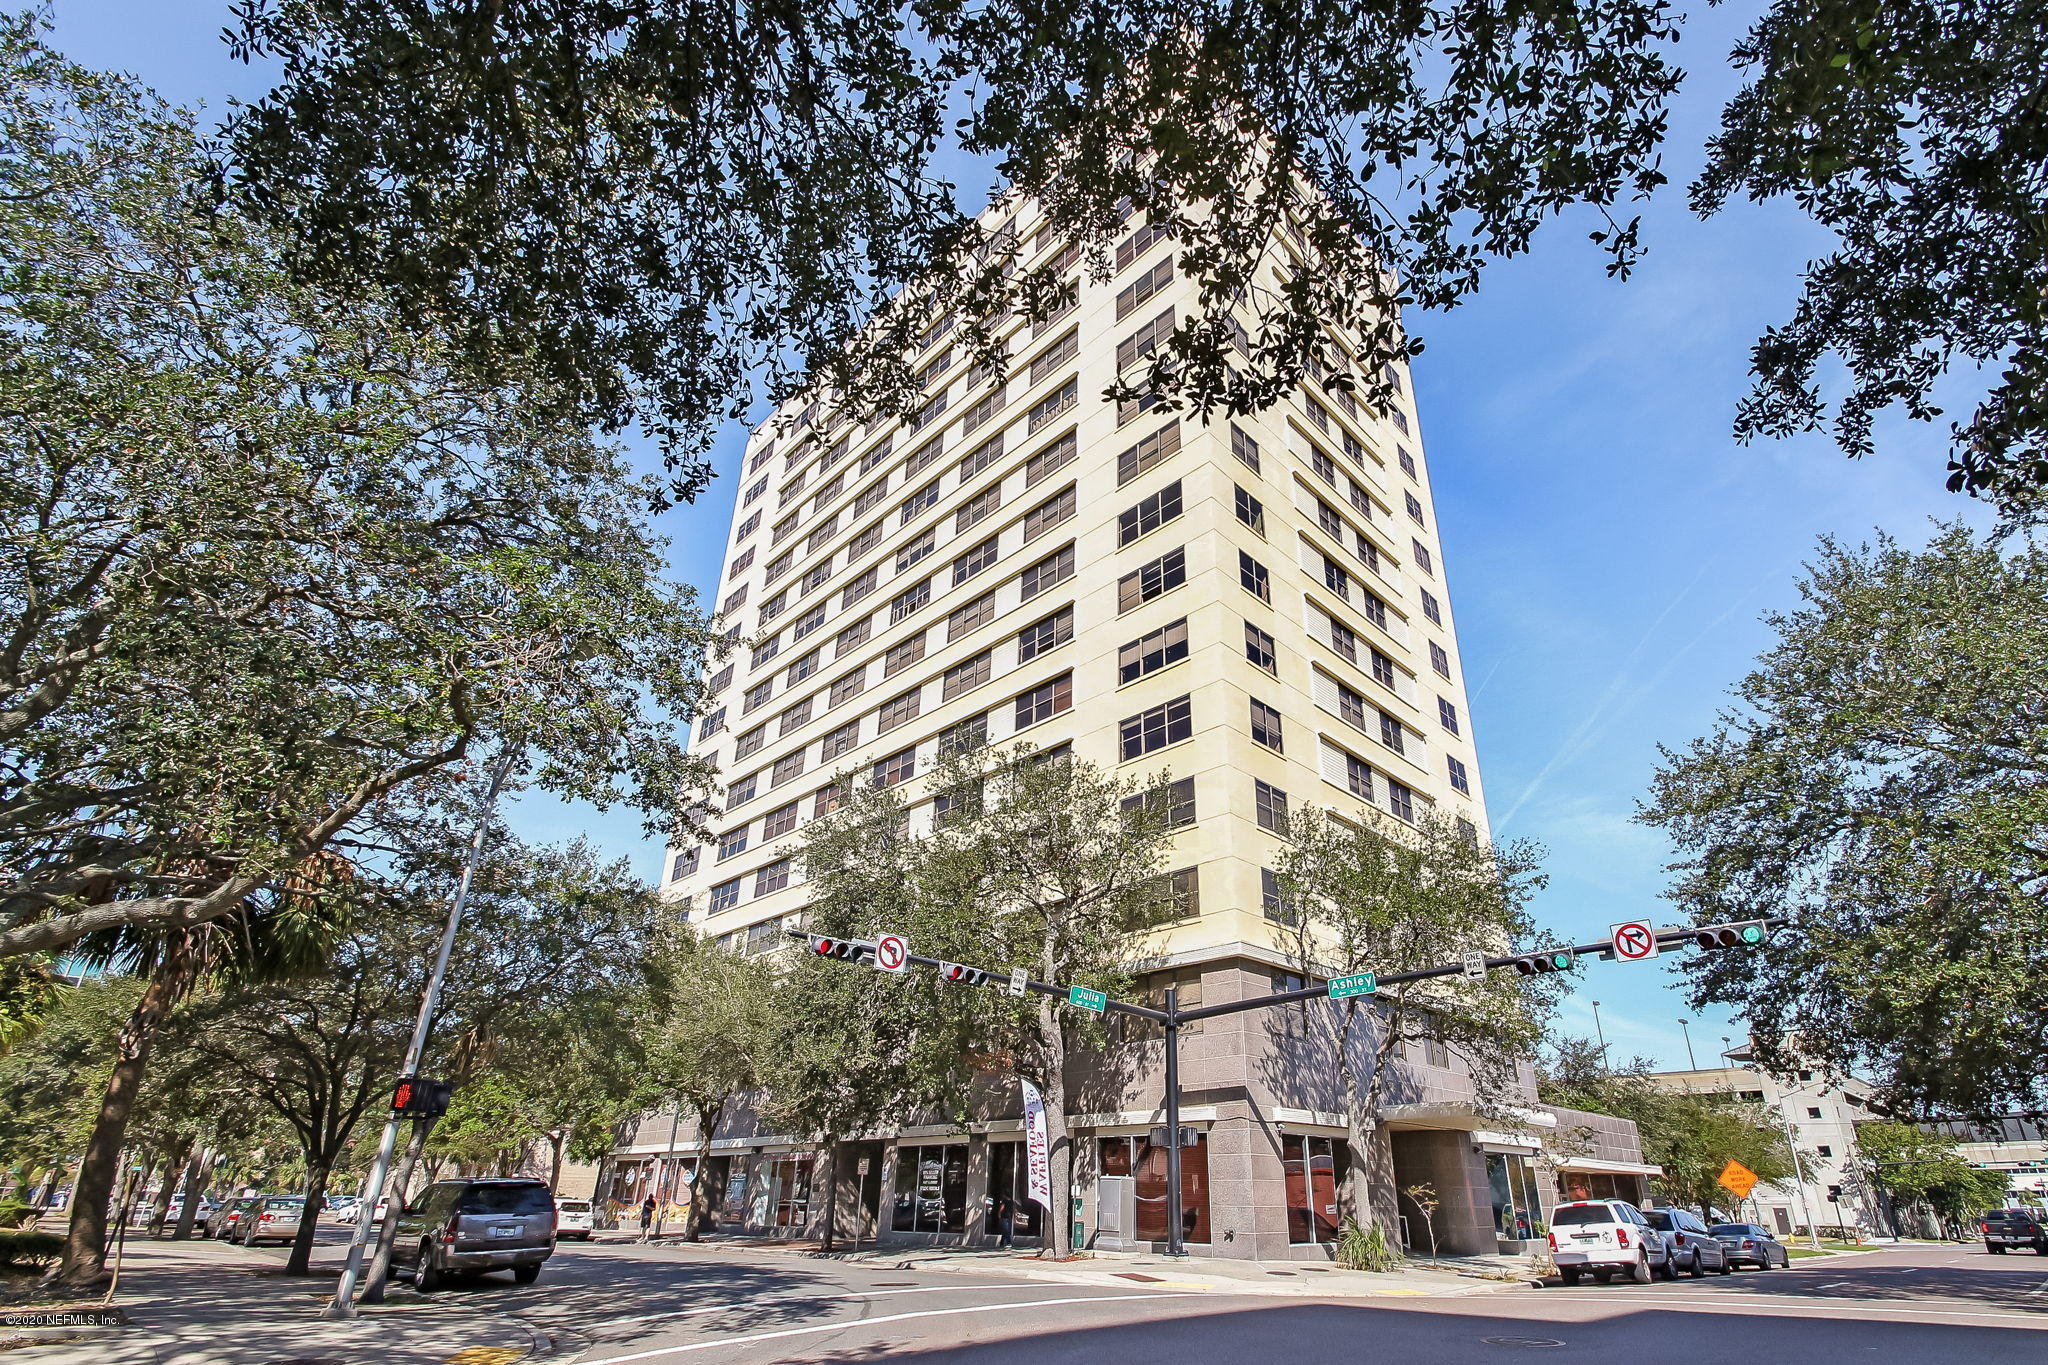 311 ASHLEY, JACKSONVILLE, FLORIDA 32202, 1 Bedroom Bedrooms, ,1 BathroomBathrooms,Investment / MultiFamily,For sale,ASHLEY,1080280